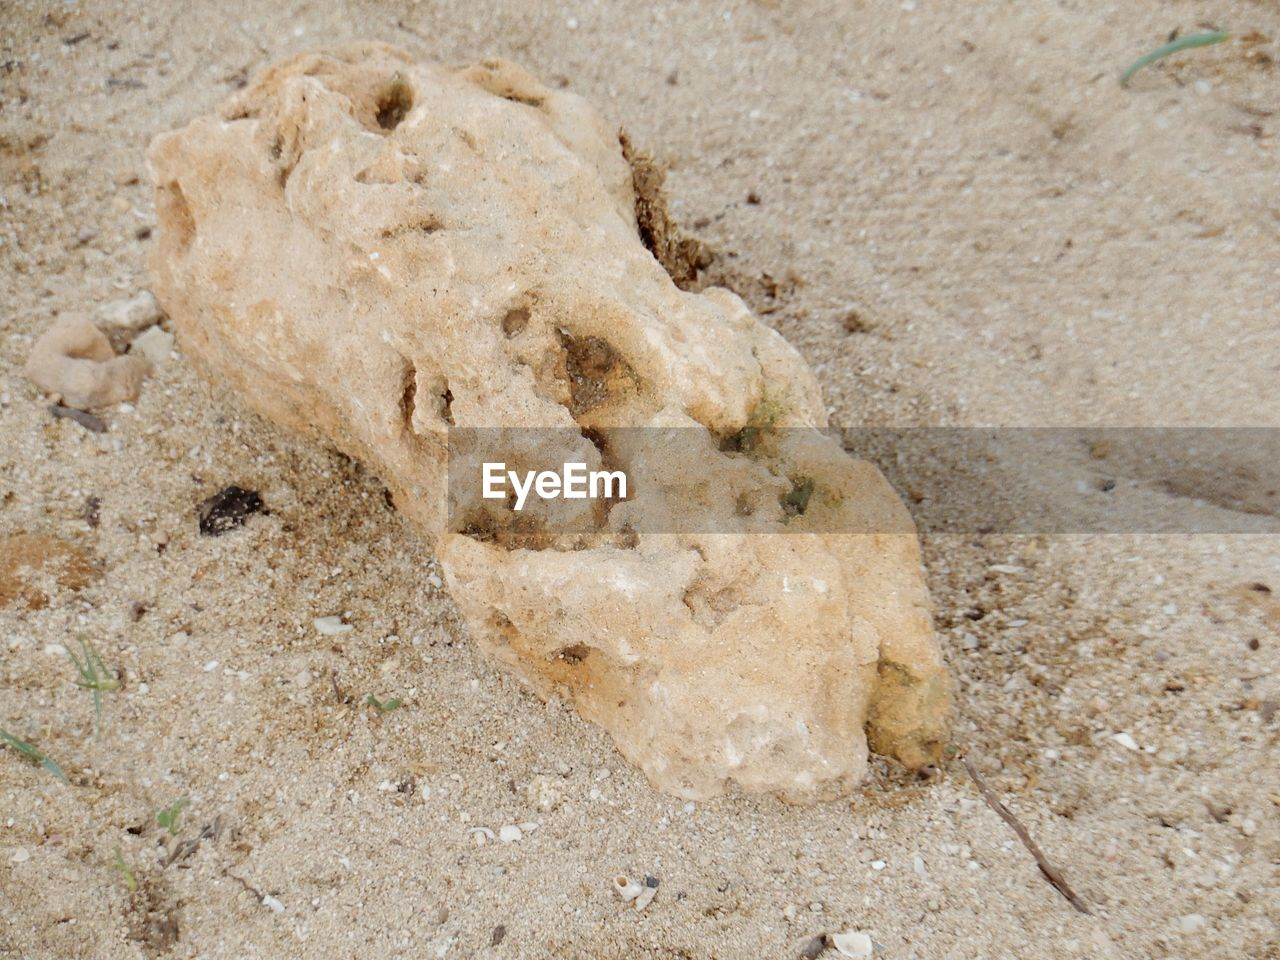 land, beach, sand, no people, close-up, nature, high angle view, day, animal, animal themes, outdoors, brown, animal wildlife, bone, textured, sea, beige, animal body part, one animal, body part, marine